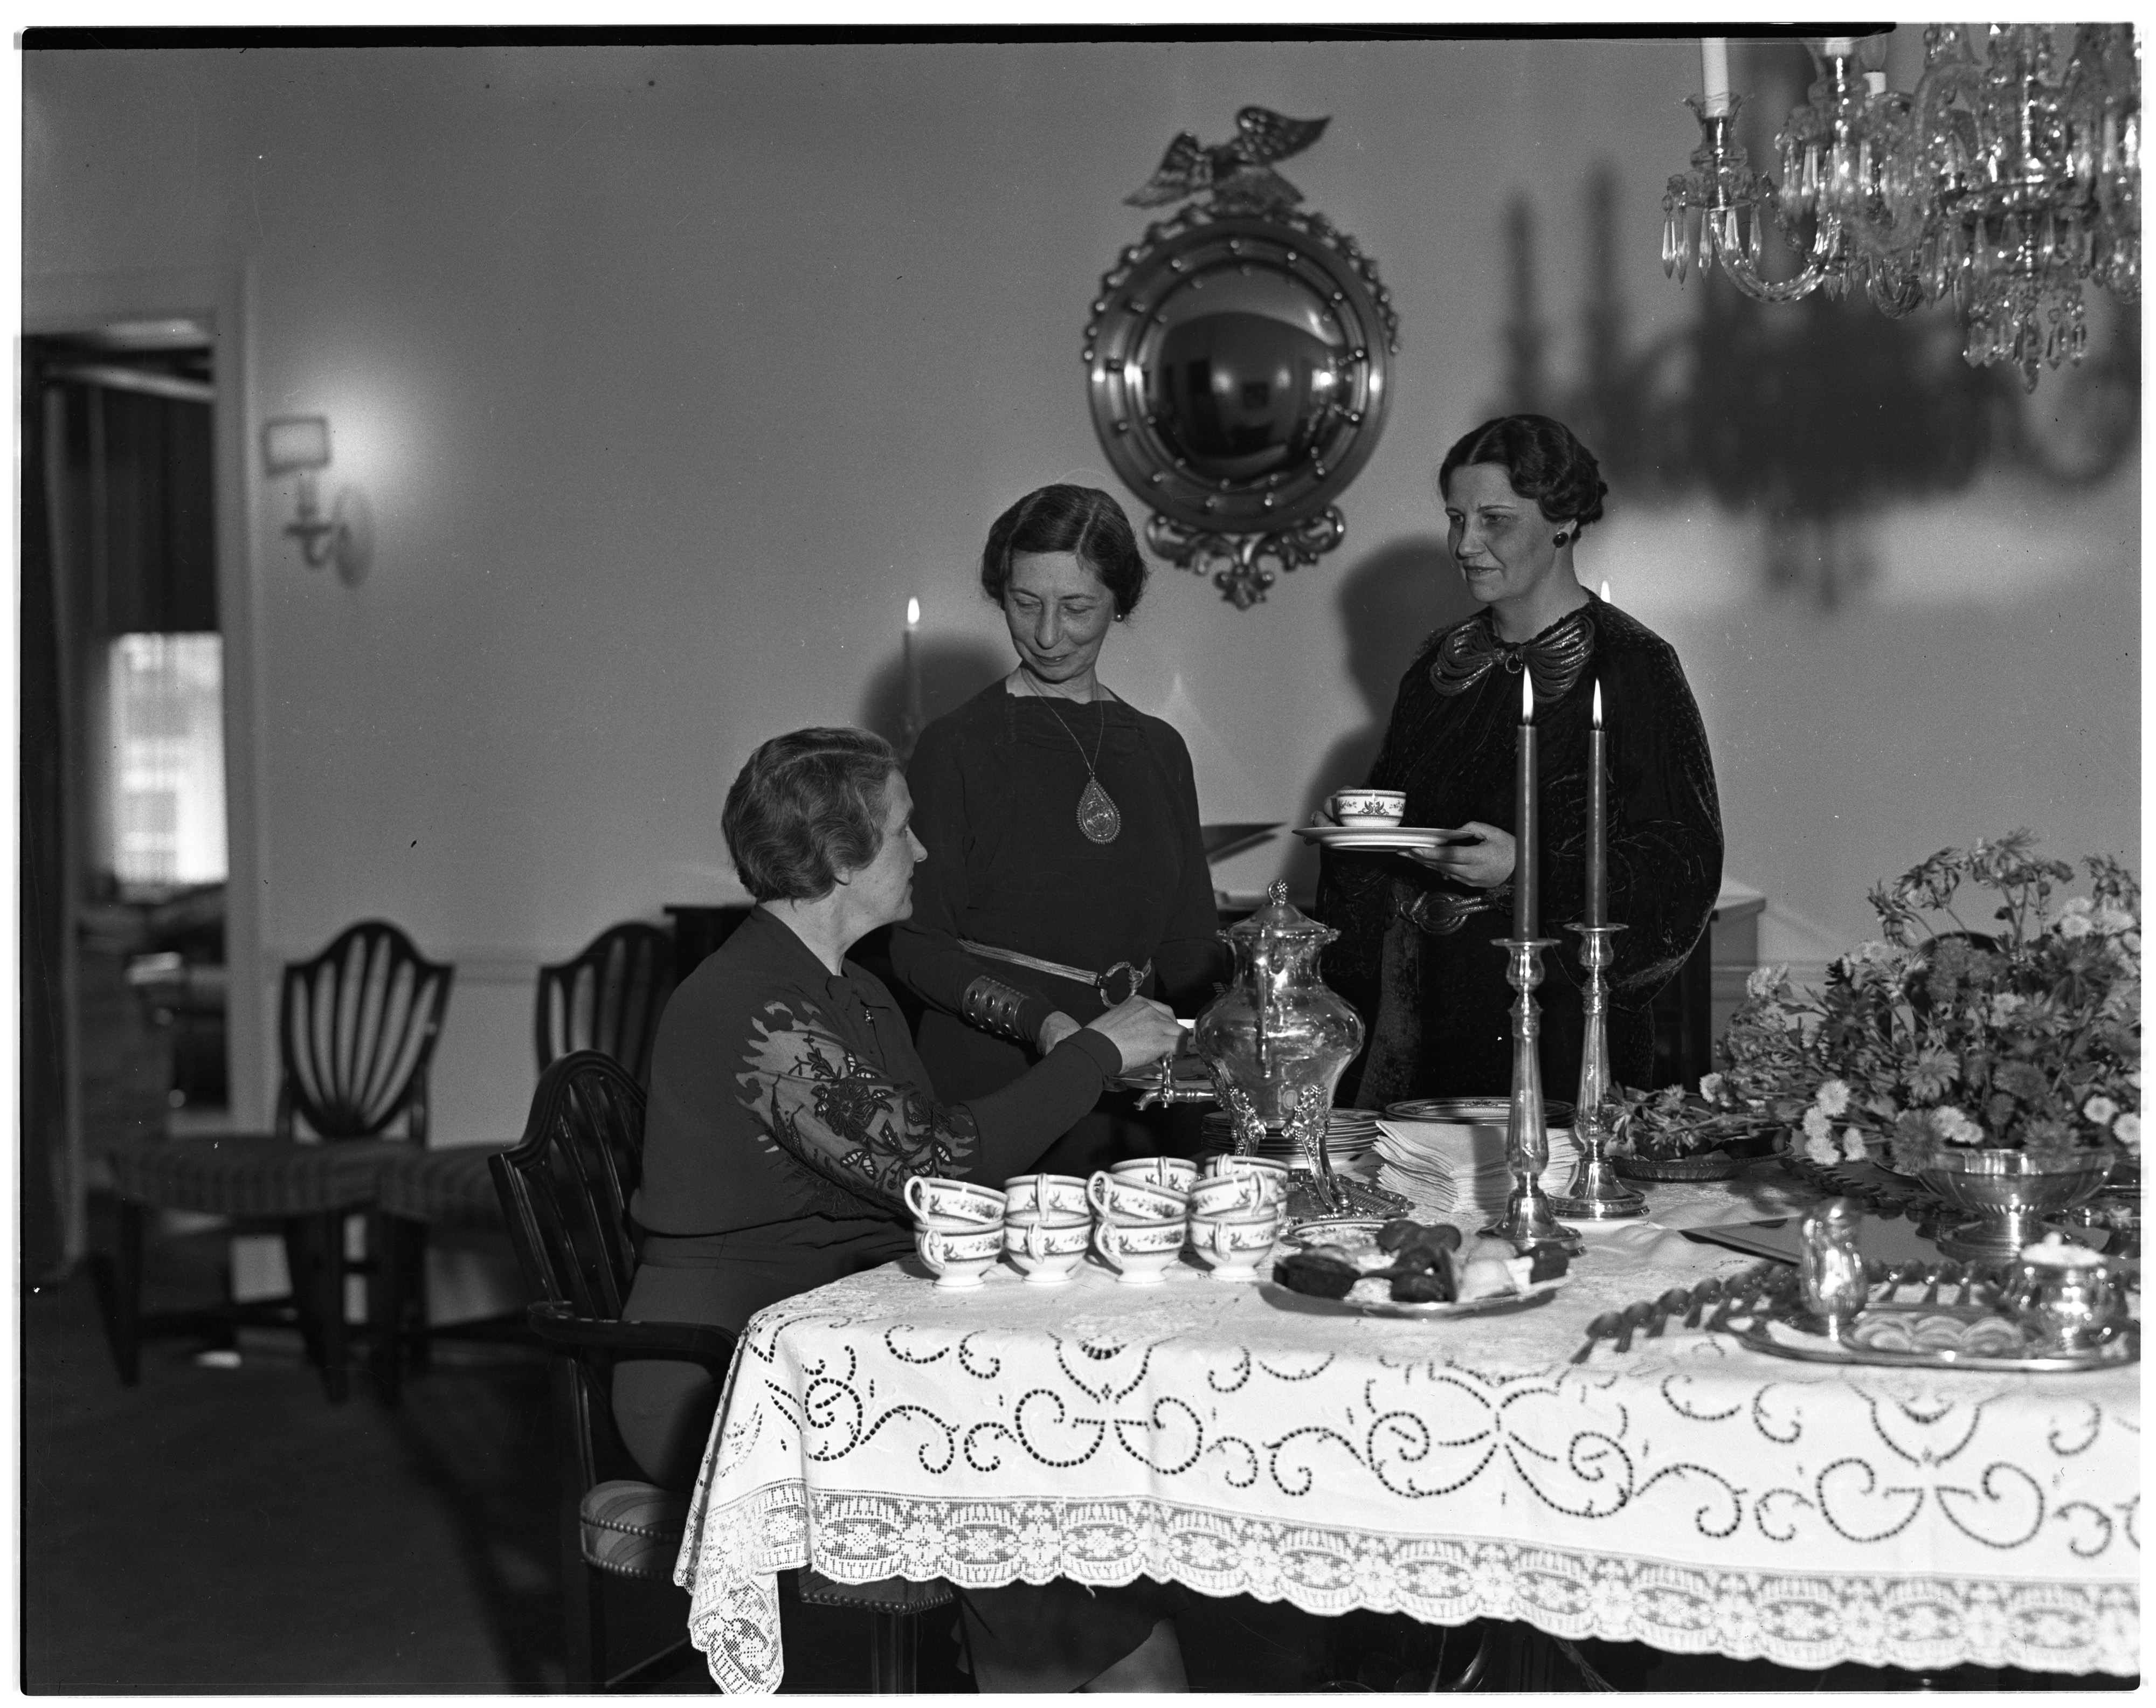 Child Study Club Having Tea with Mrs Alex G. Ruthven, Mrs. Louis H. Hollway image